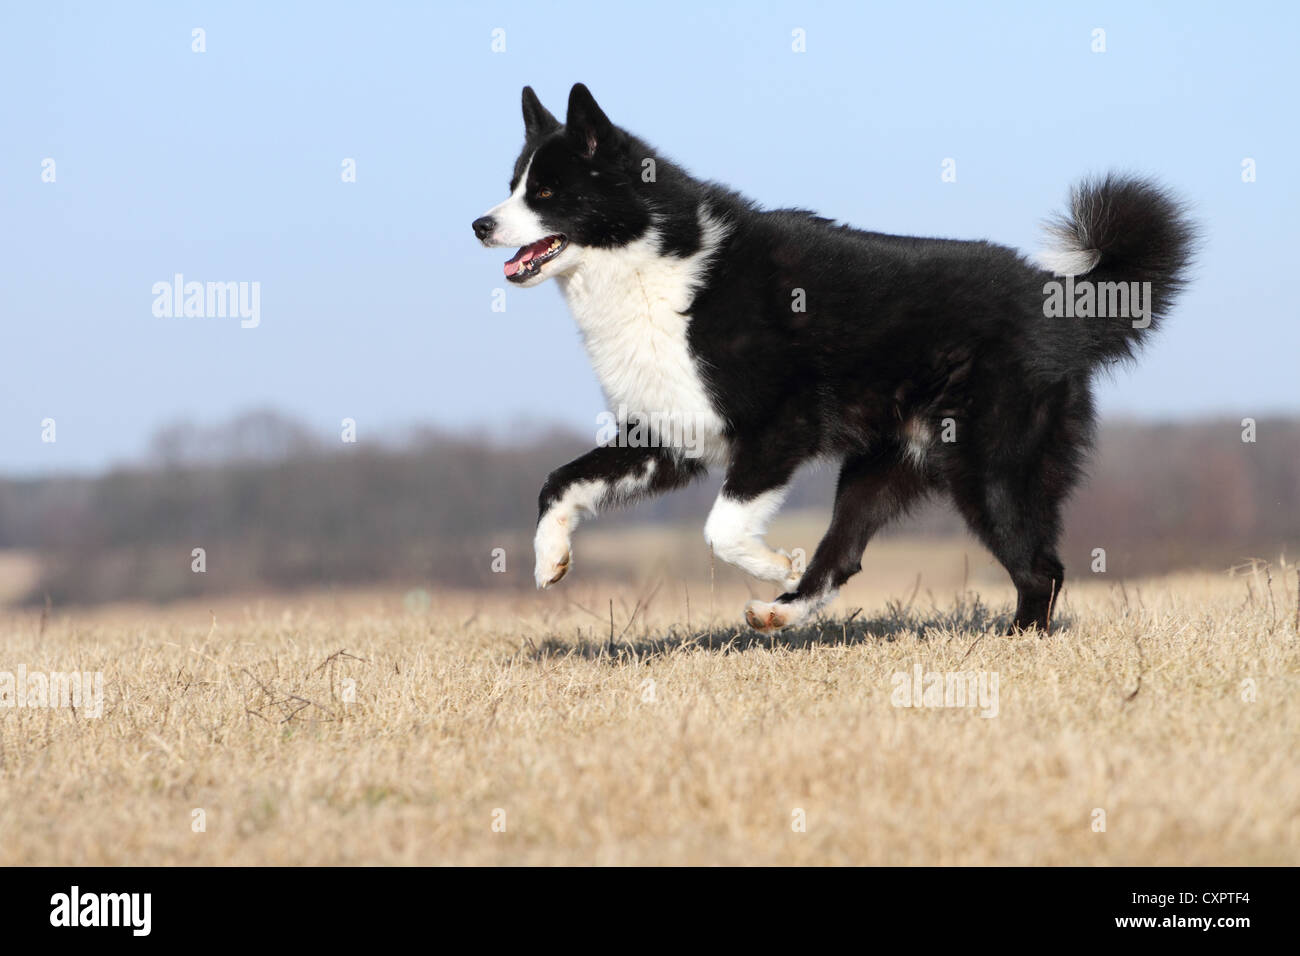 running karelian bear dog stock image kbd